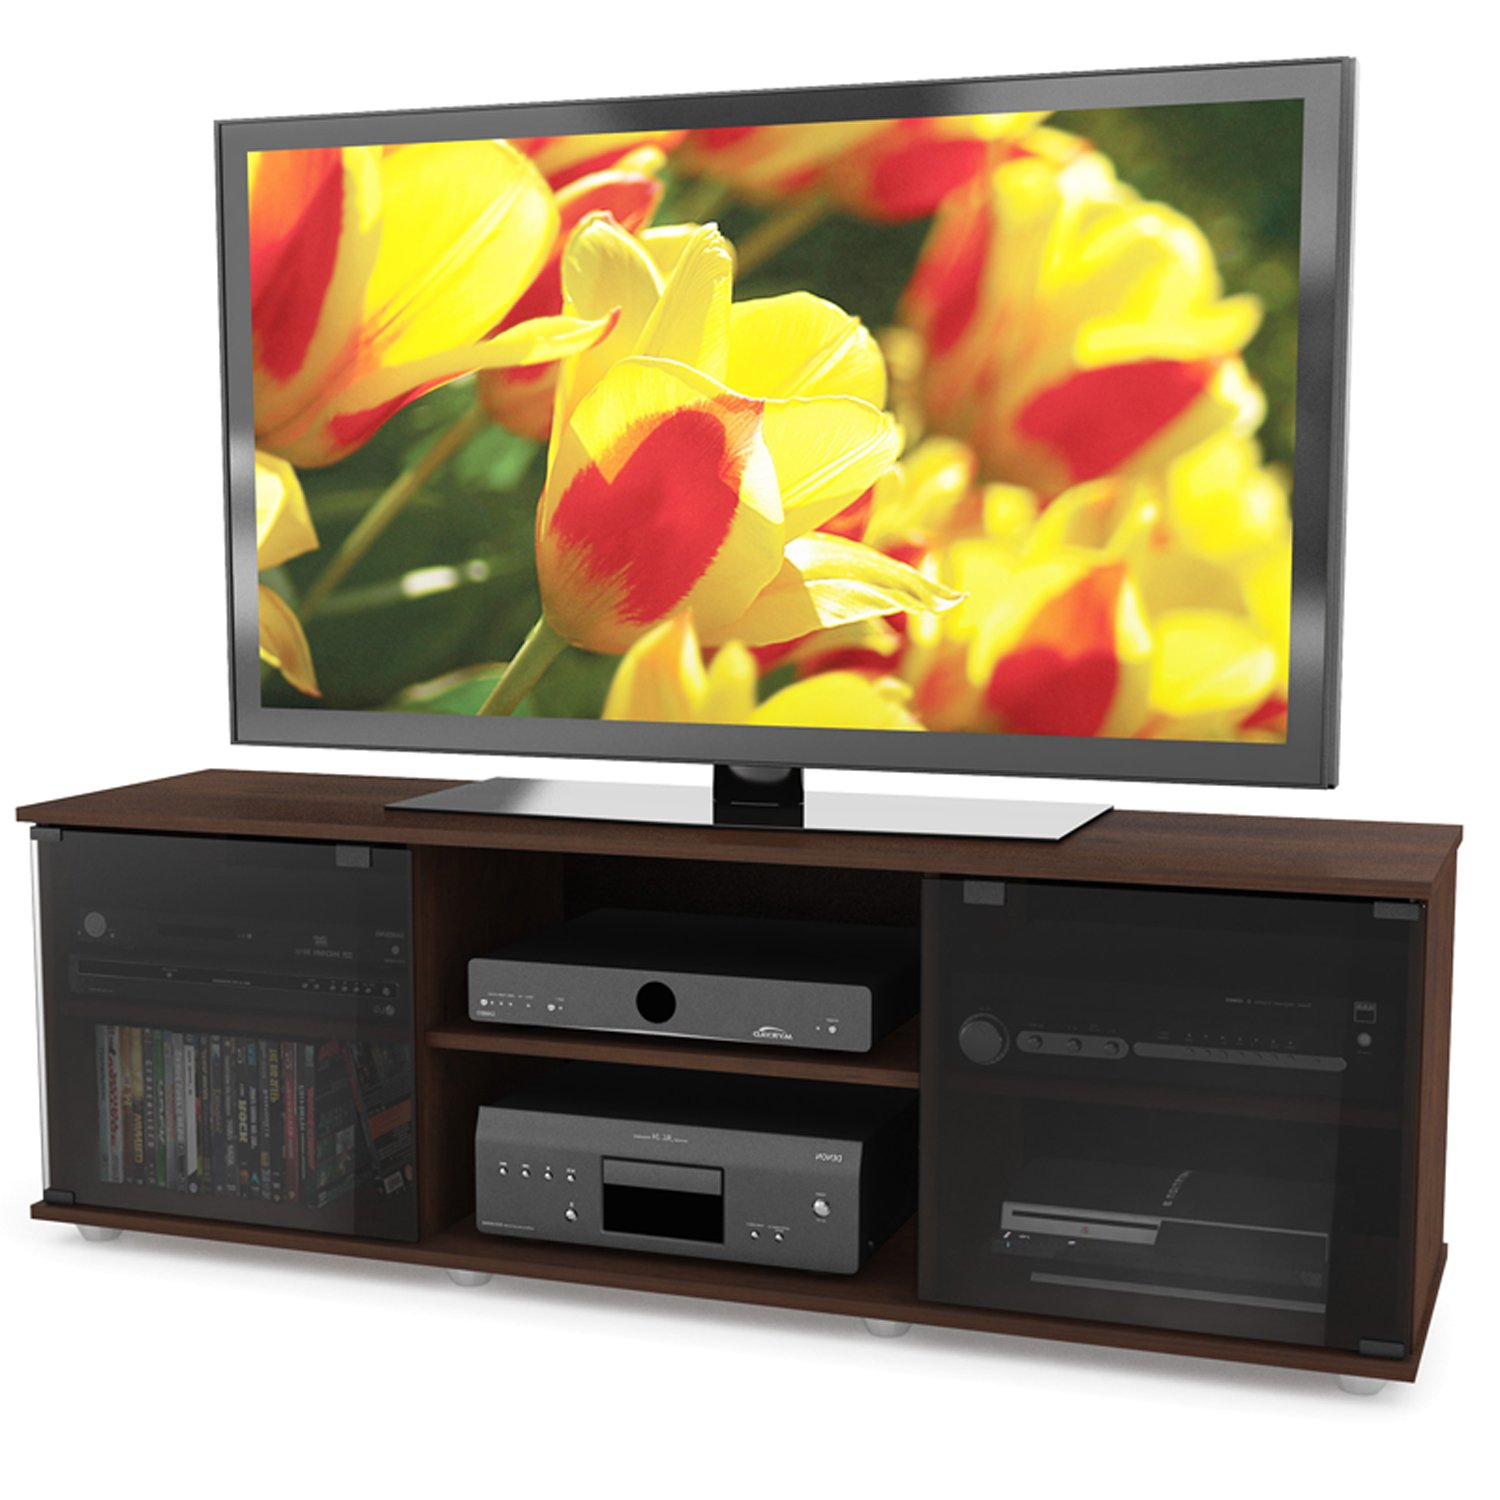 Sonax FB-2607 Fiji 60-Inch TV Component Bench, Brown